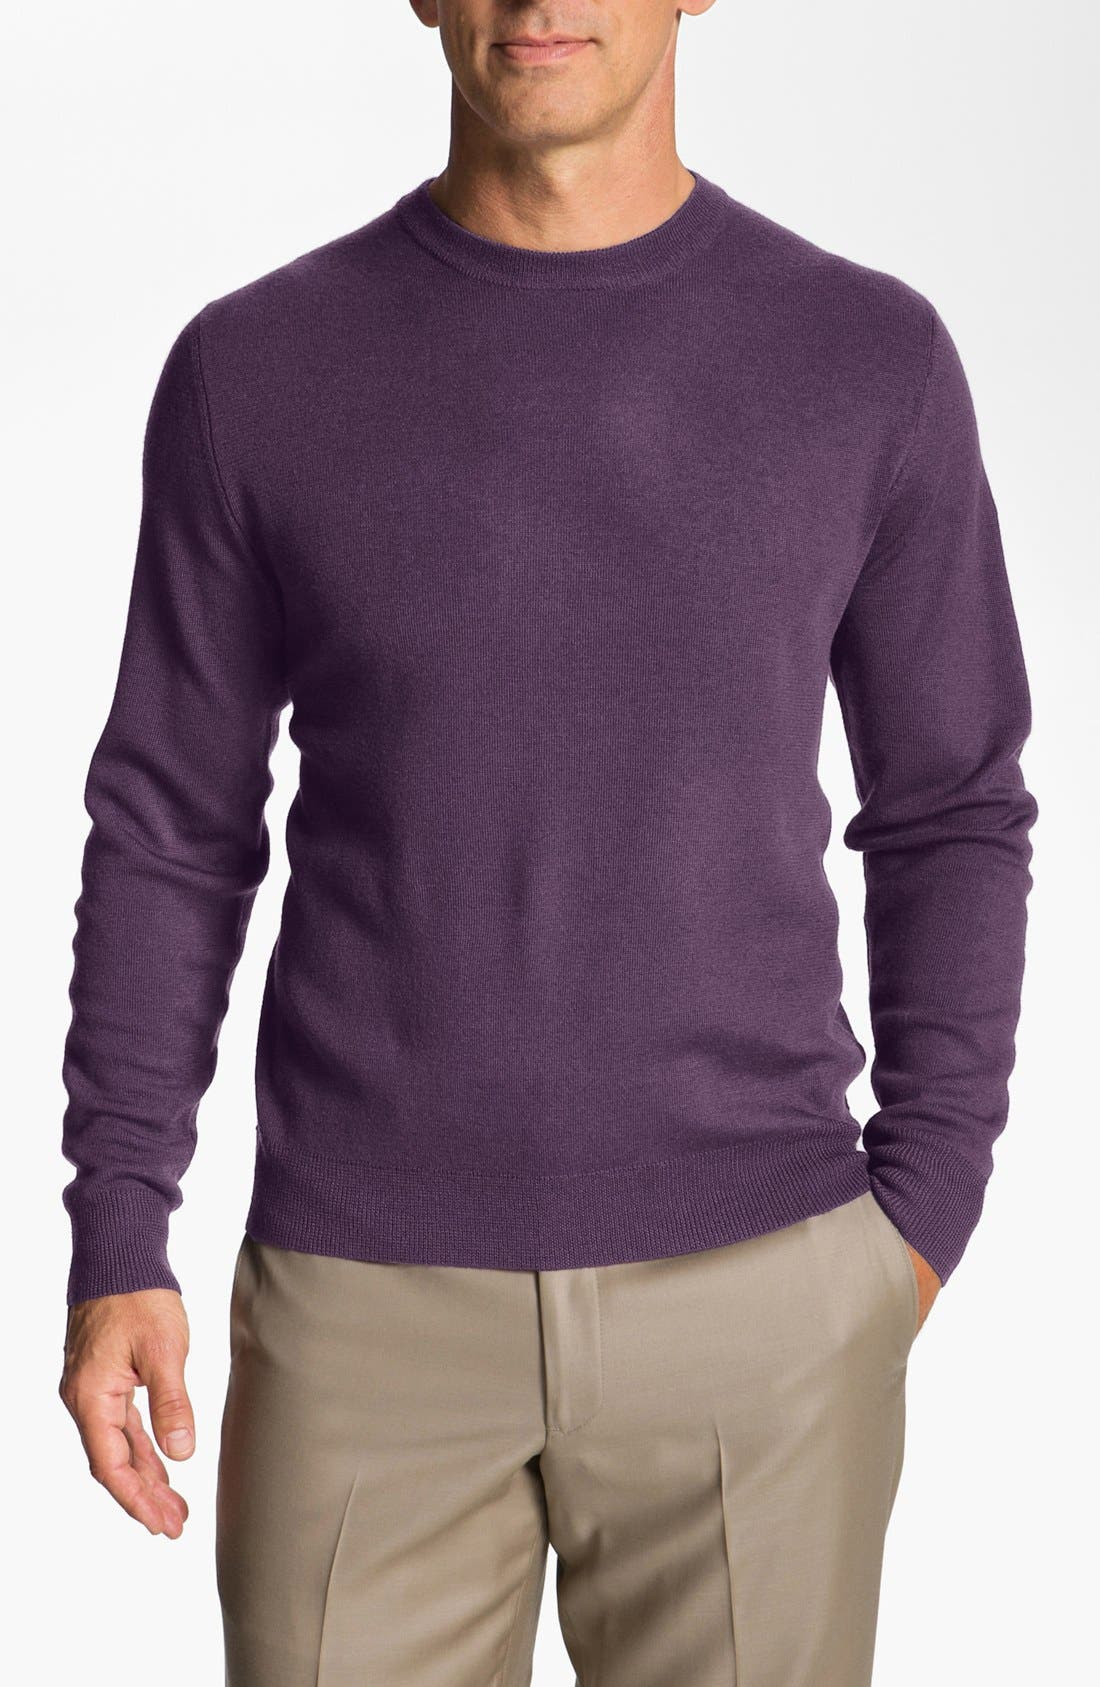 Alternate Image 1 Selected - Façonnable Merino Wool Sweater